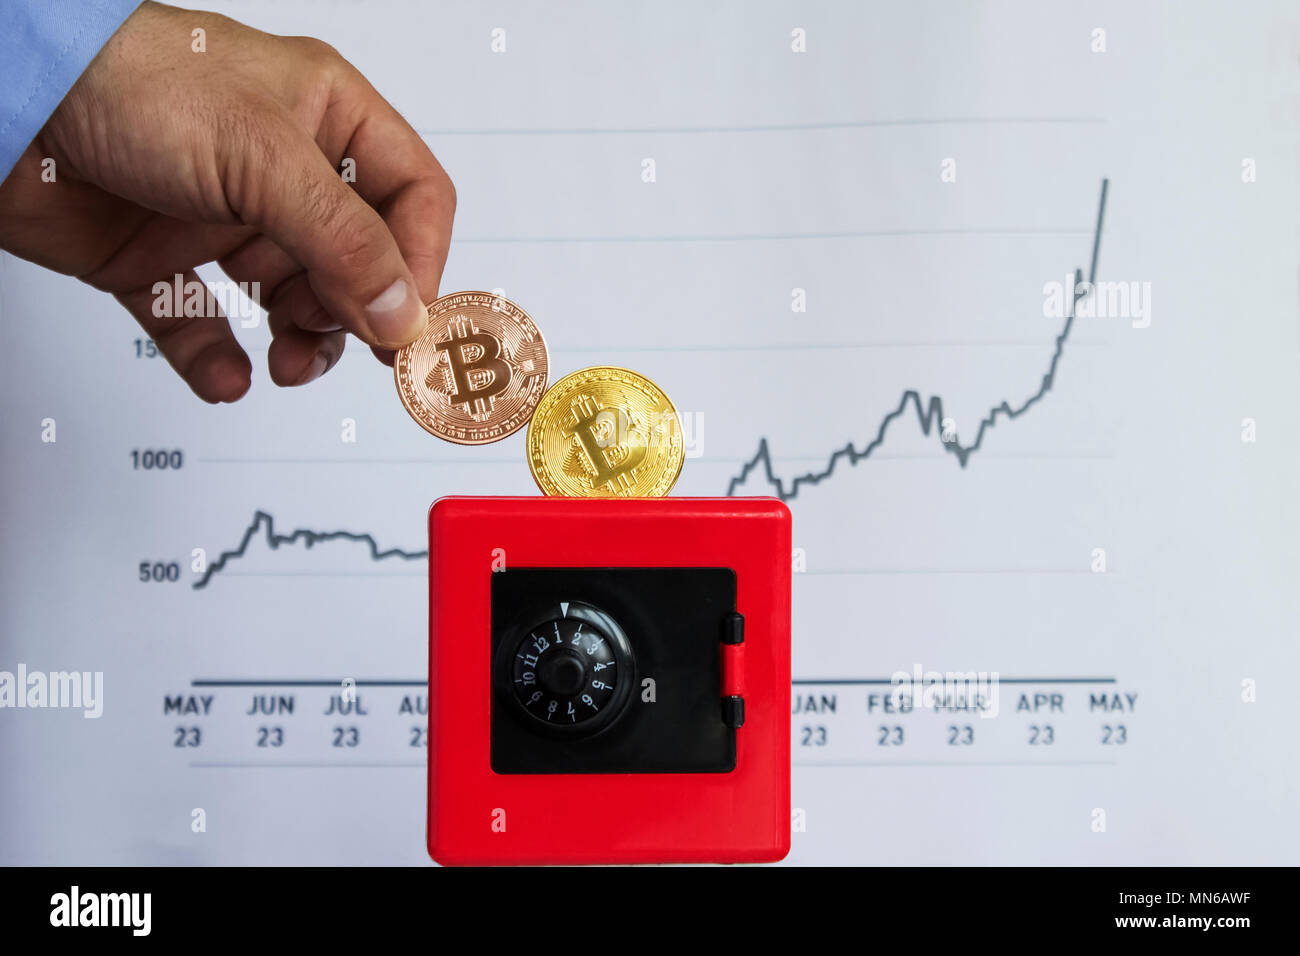 A business man who saves his earned bitcoin money, throws coin in a red safe, with a bitcoin diagram in the background|gold|blue|sleeve - Stock Image